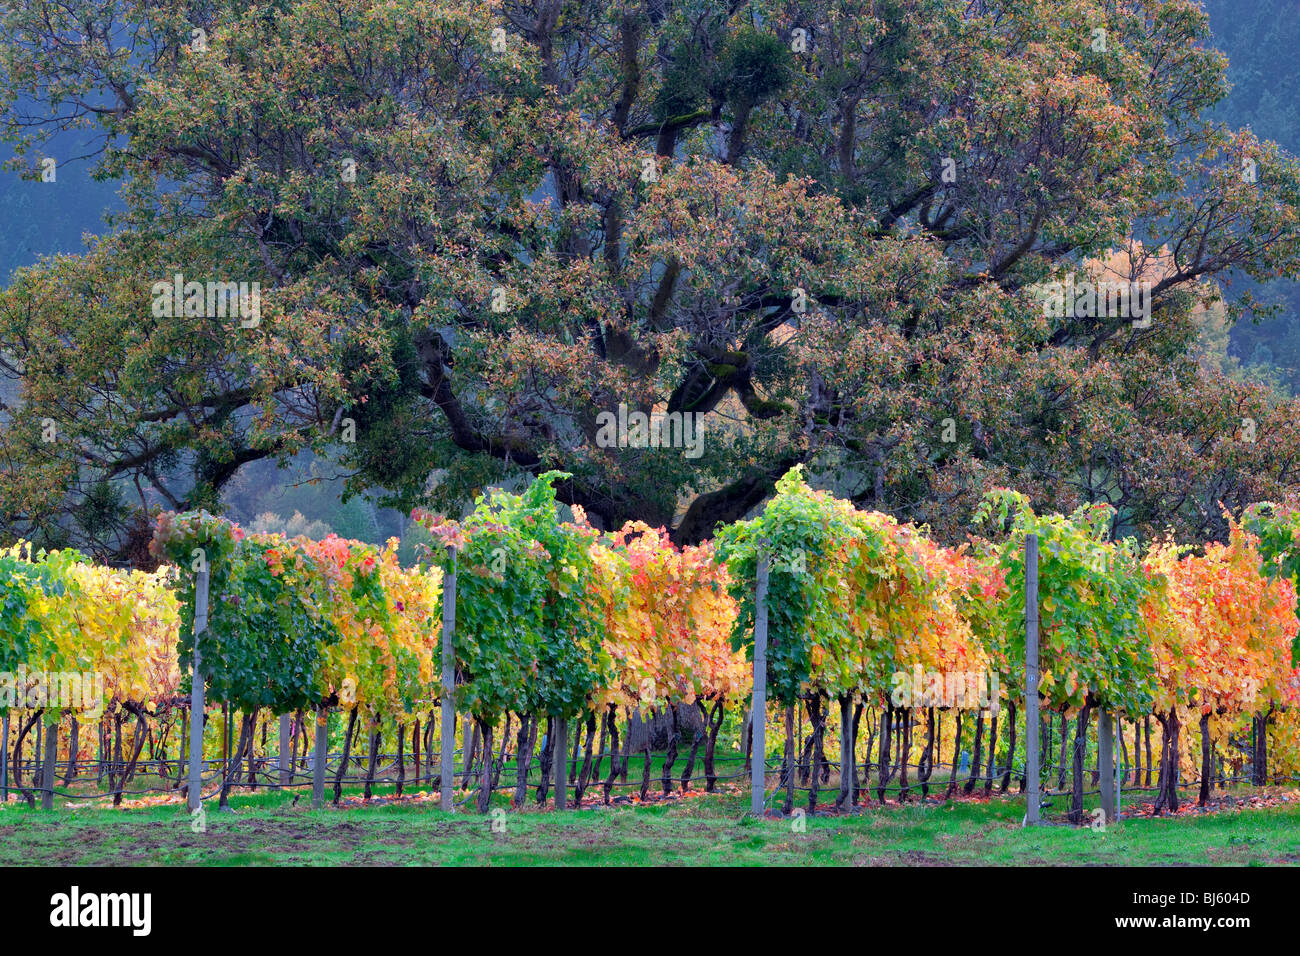 Vineyard and oak tree in fall color. Near Applegate, Oregon - Stock Image